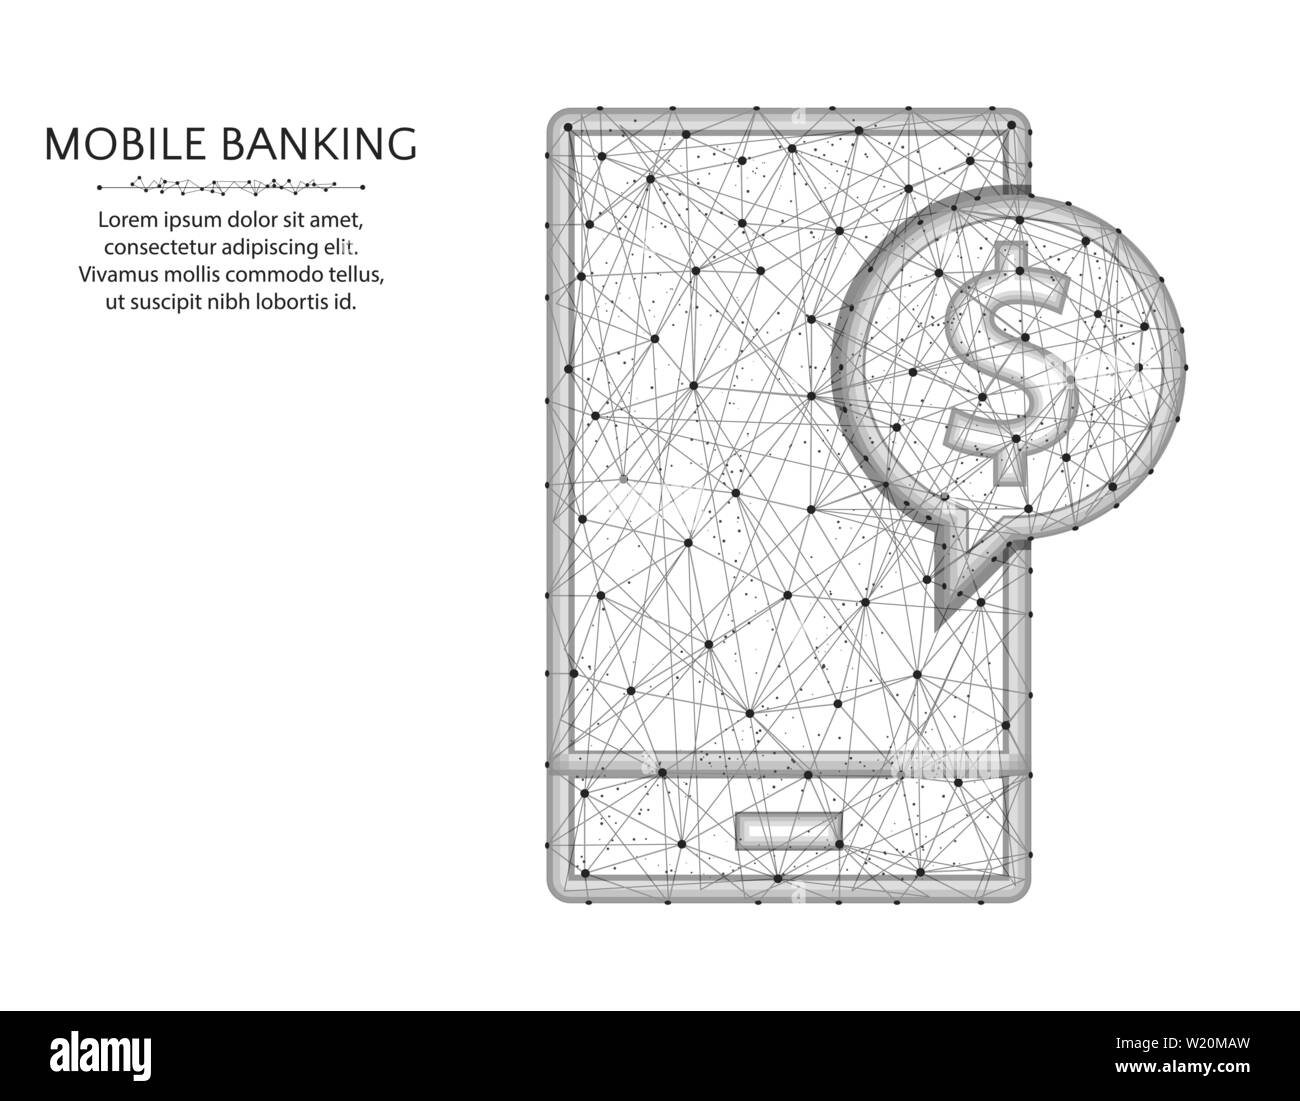 mobile banking low poly design, modern phone in polygonal style, finance or  dollar symbol